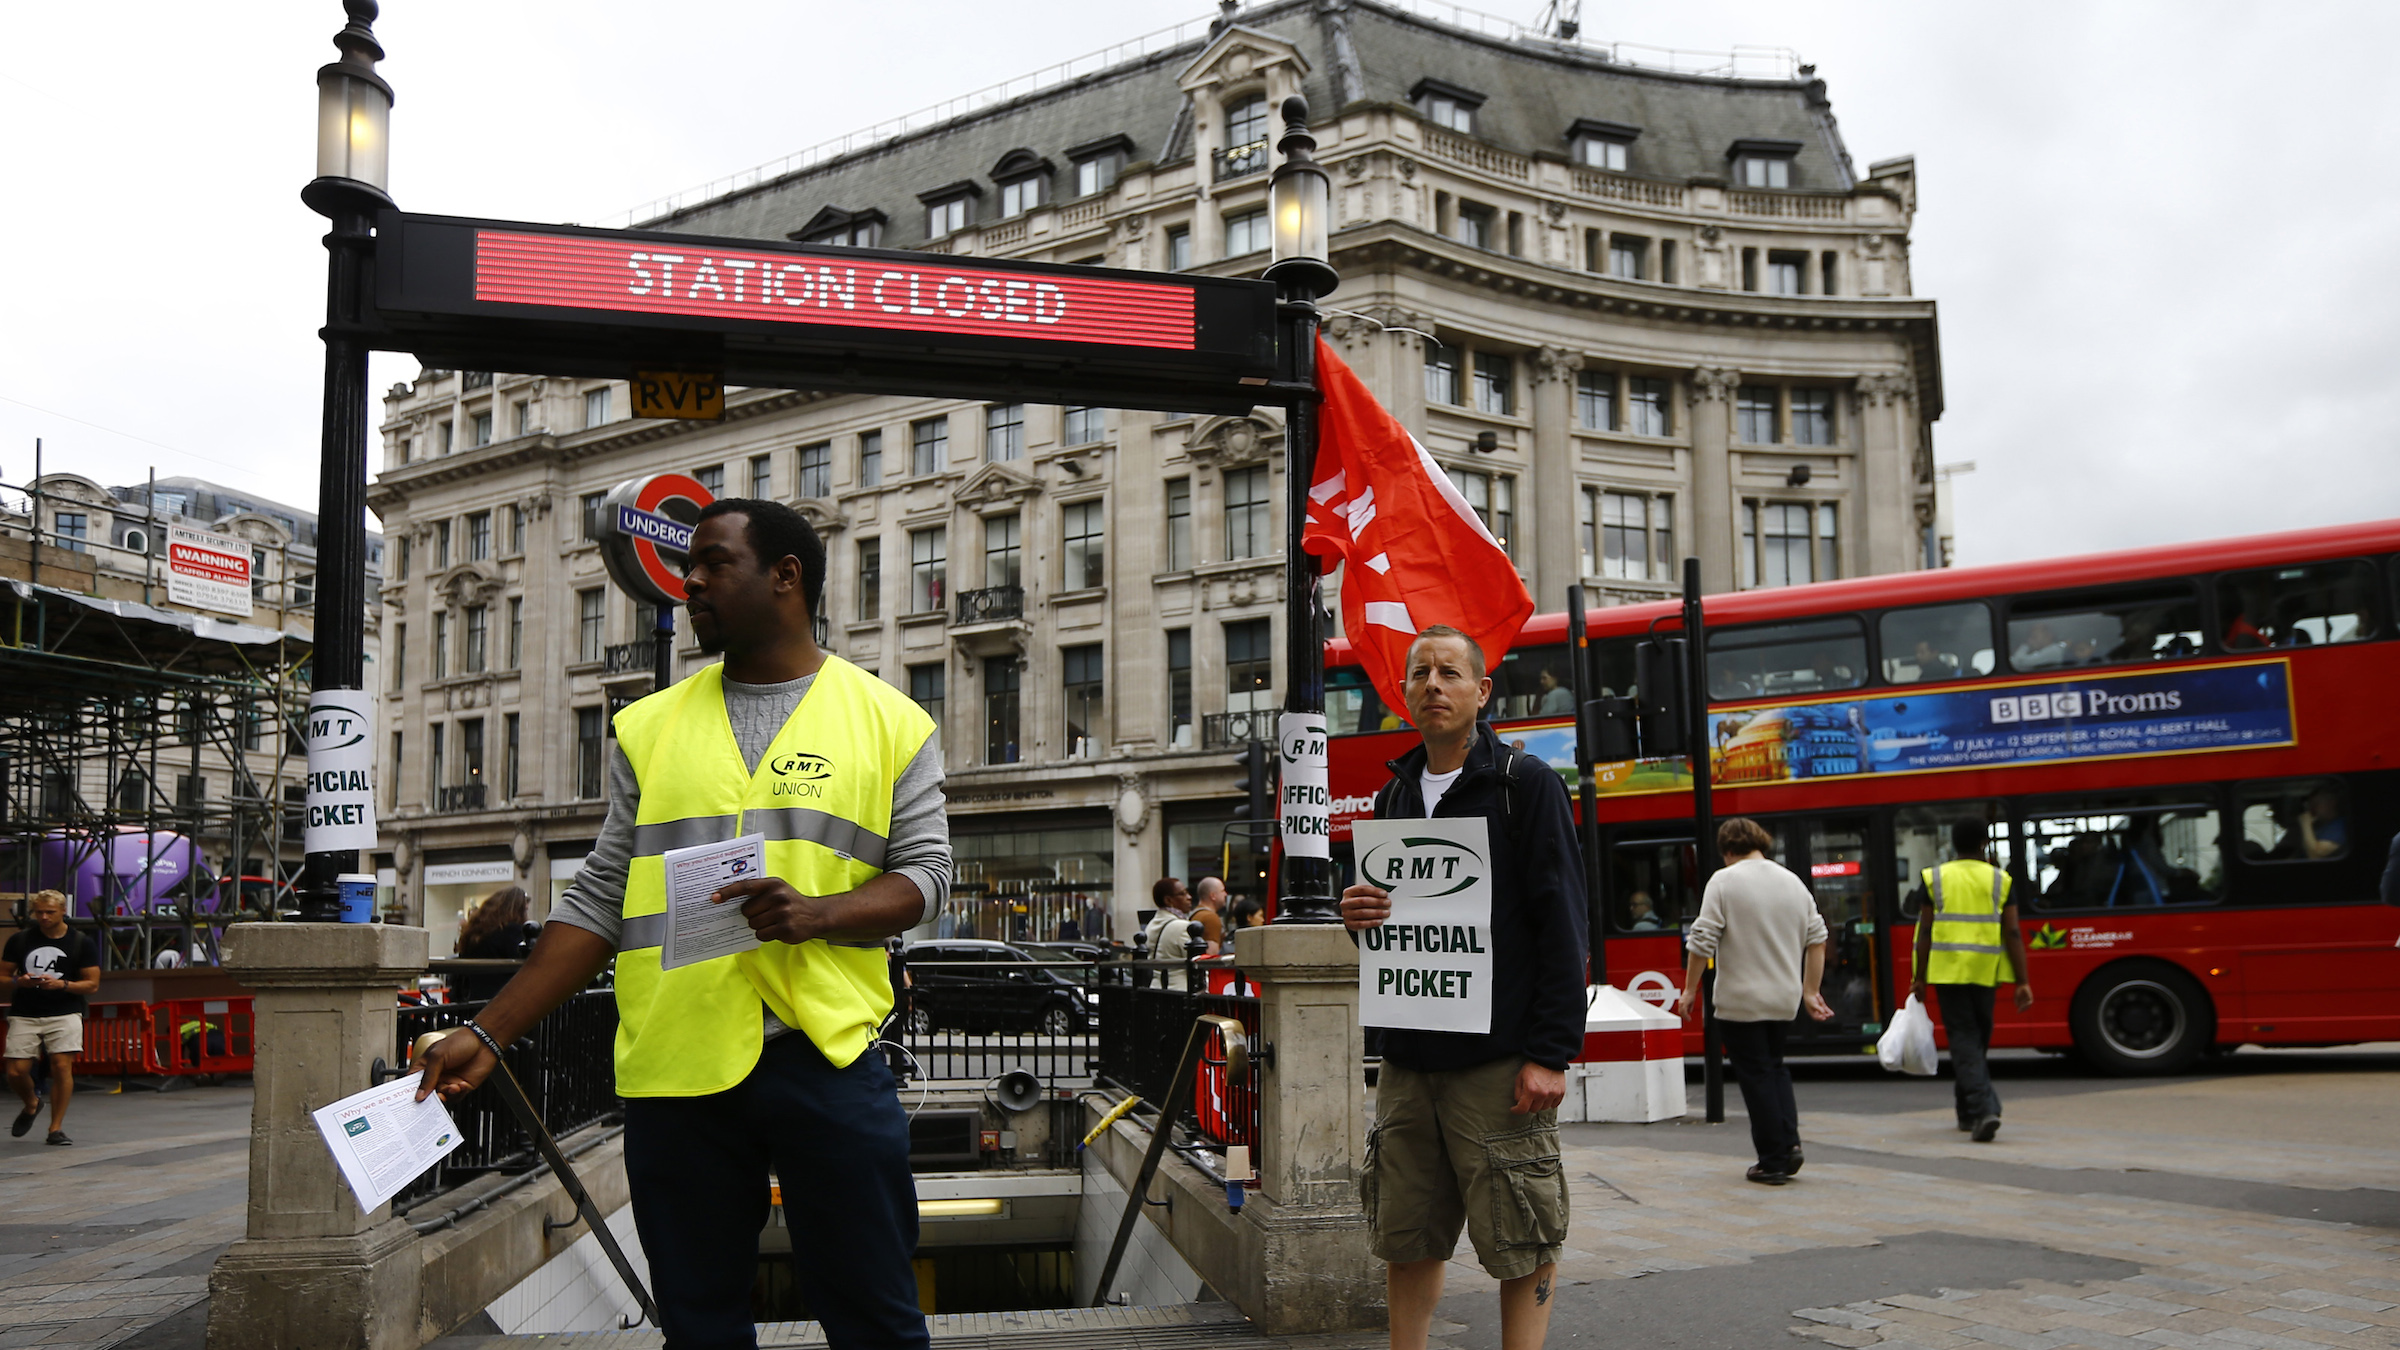 RMT members picket in London